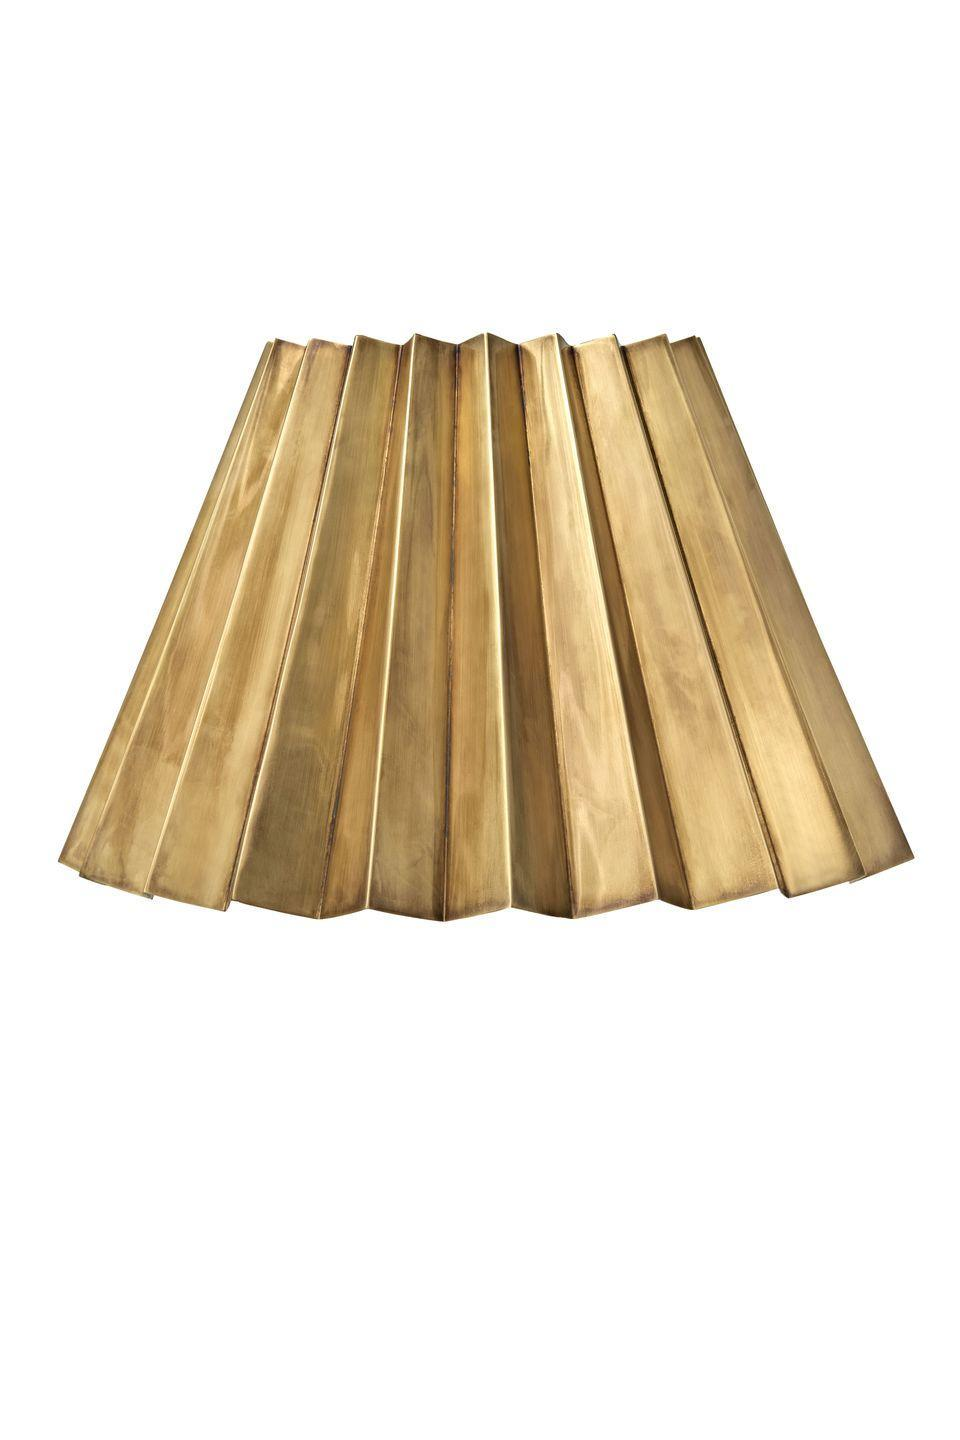 "<p><a class=""link rapid-noclick-resp"" href=""https://matildagoad.com/collections/lighting/products/brass-concertina-lampshade-small-1"" rel=""nofollow noopener"" target=""_blank"" data-ylk=""slk:SHOP NOW"">SHOP NOW</a></p><p>Following the sell-out success of her signature raffia lampshade, Matilda Goad has launched the brass concertina lampshade. Available in two sizes, it'll add a sense of glamour. </p><p>Small concertina lampshade, £175, <a href=""https://matildagoad.com/collections/lighting/products/brass-concertina-lampshade-small-1"" rel=""nofollow noopener"" target=""_blank"" data-ylk=""slk:Matilda Goad"" class=""link rapid-noclick-resp"">Matilda Goad</a></p>"